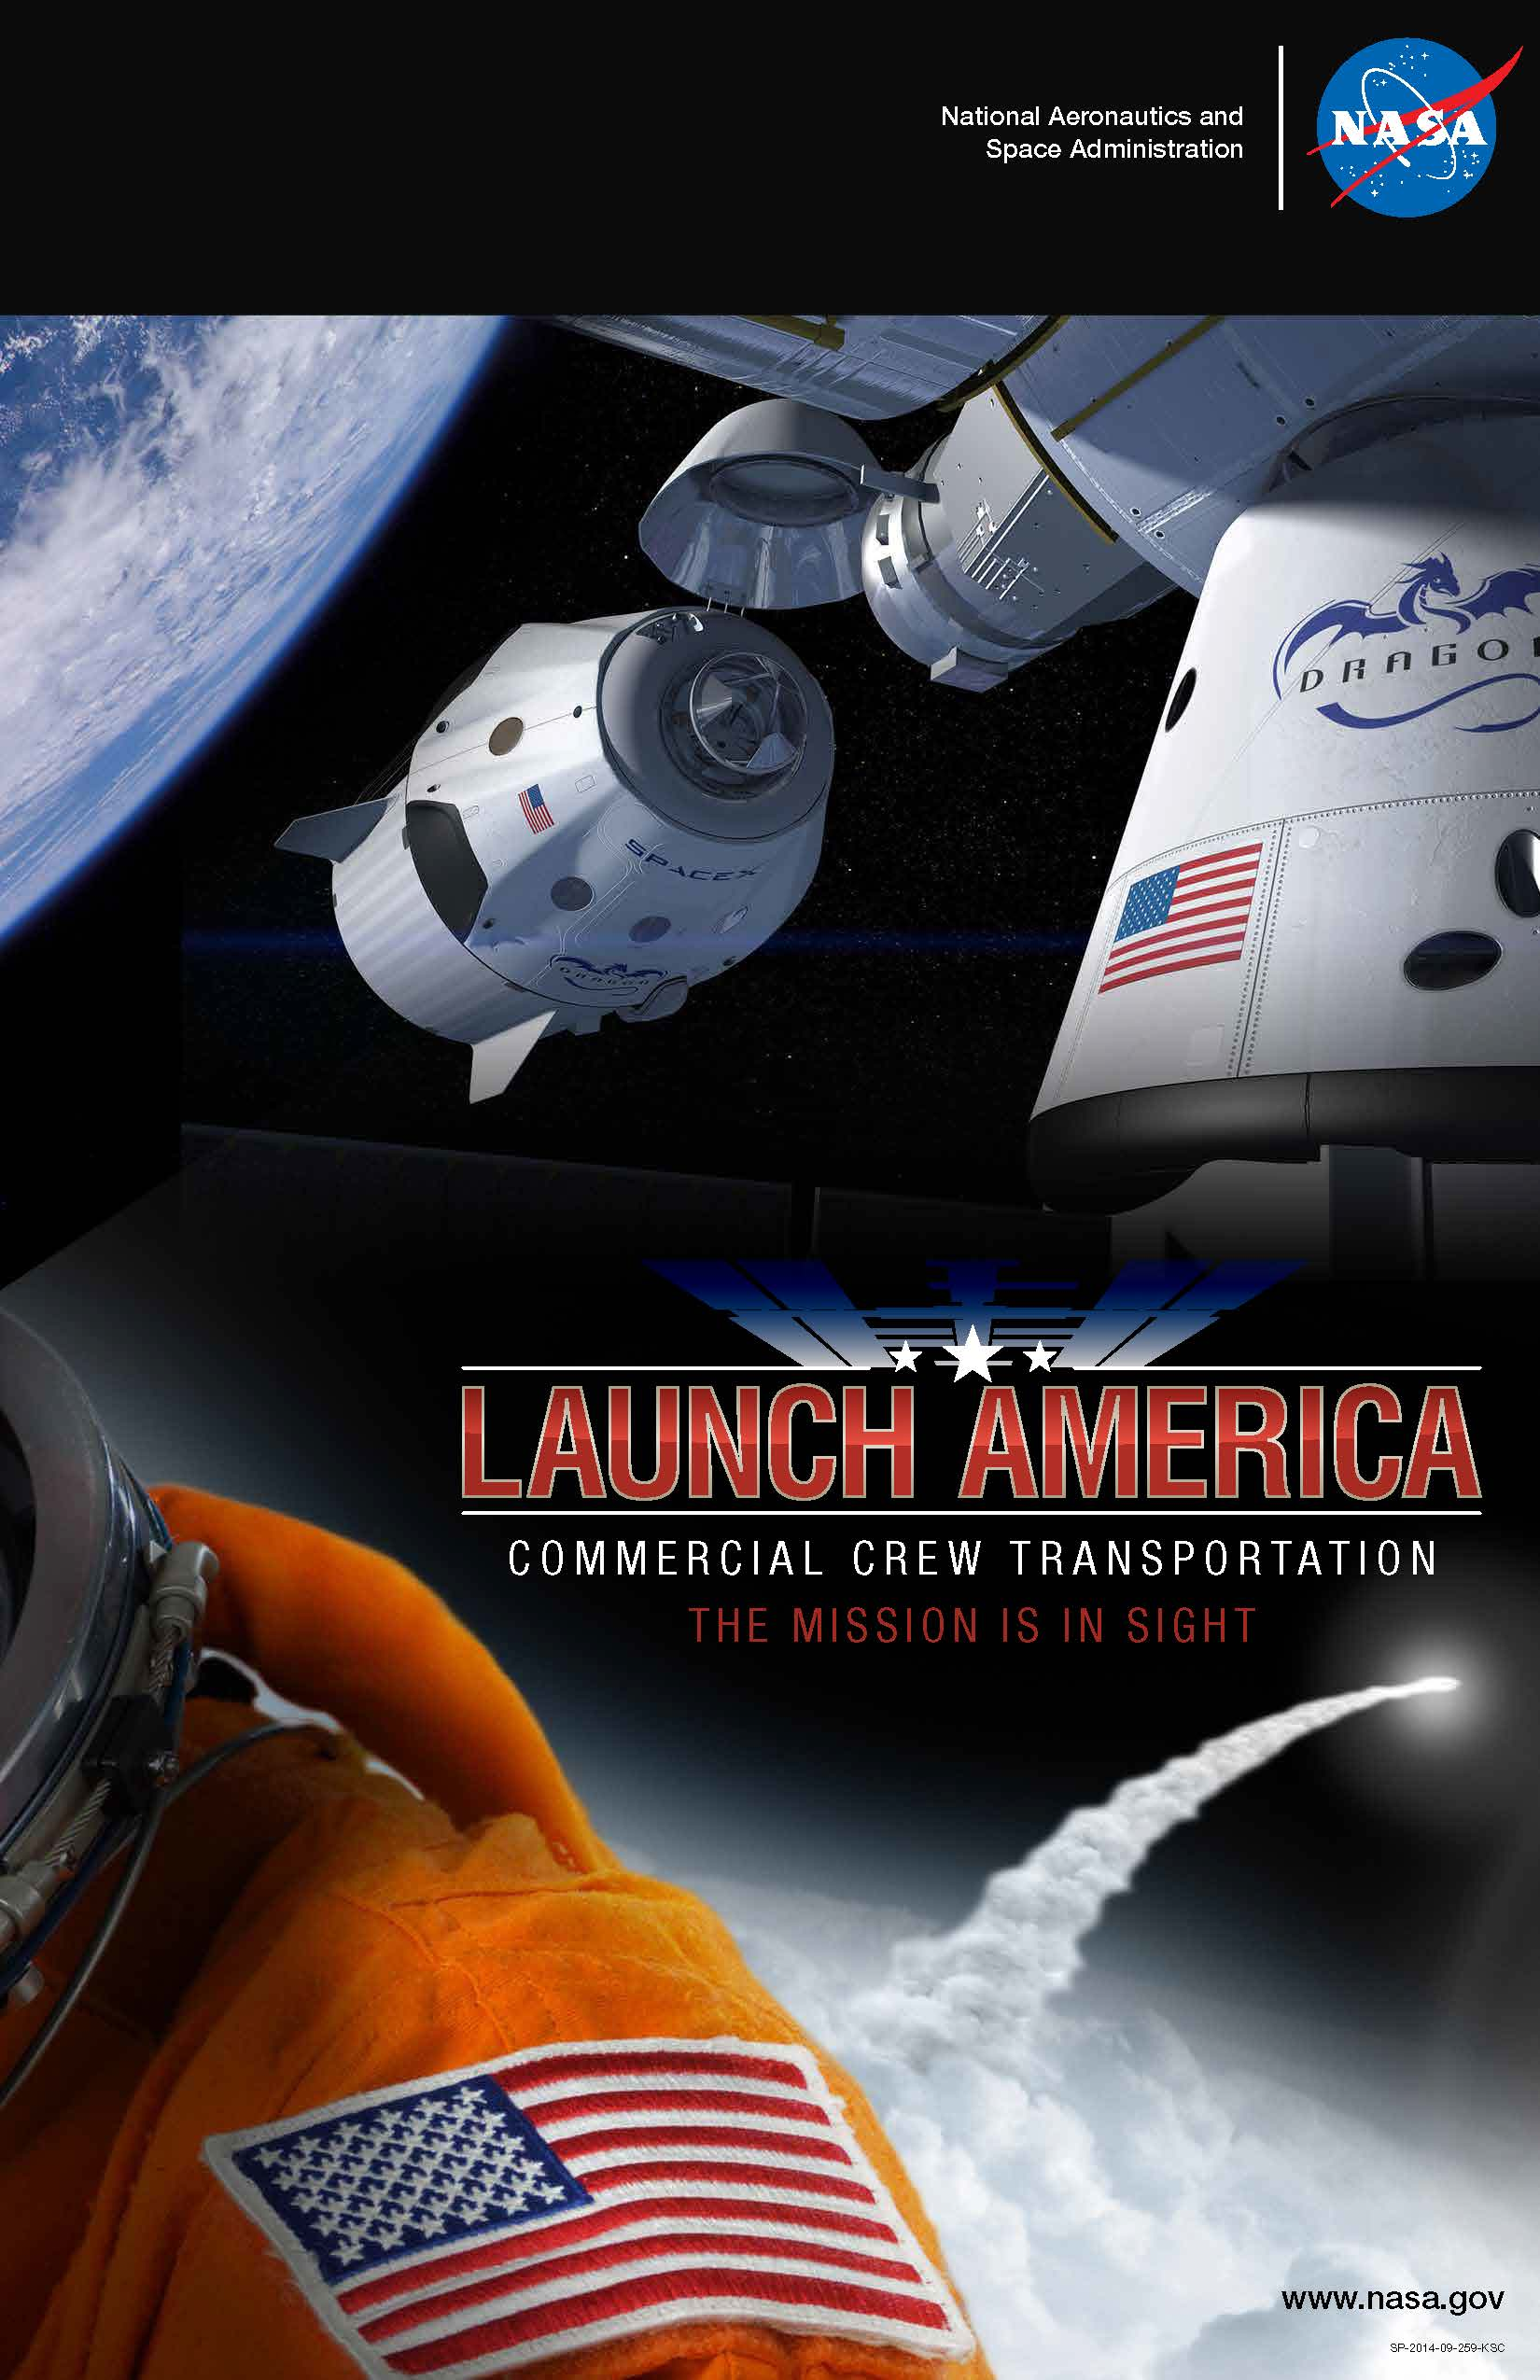 http://blogs.nasa.gov/commercialcrew/wp-content/uploads/sites/230/2014/09/CCPPartnerCCtCap_11x17-4-SpaceX_508.jpg